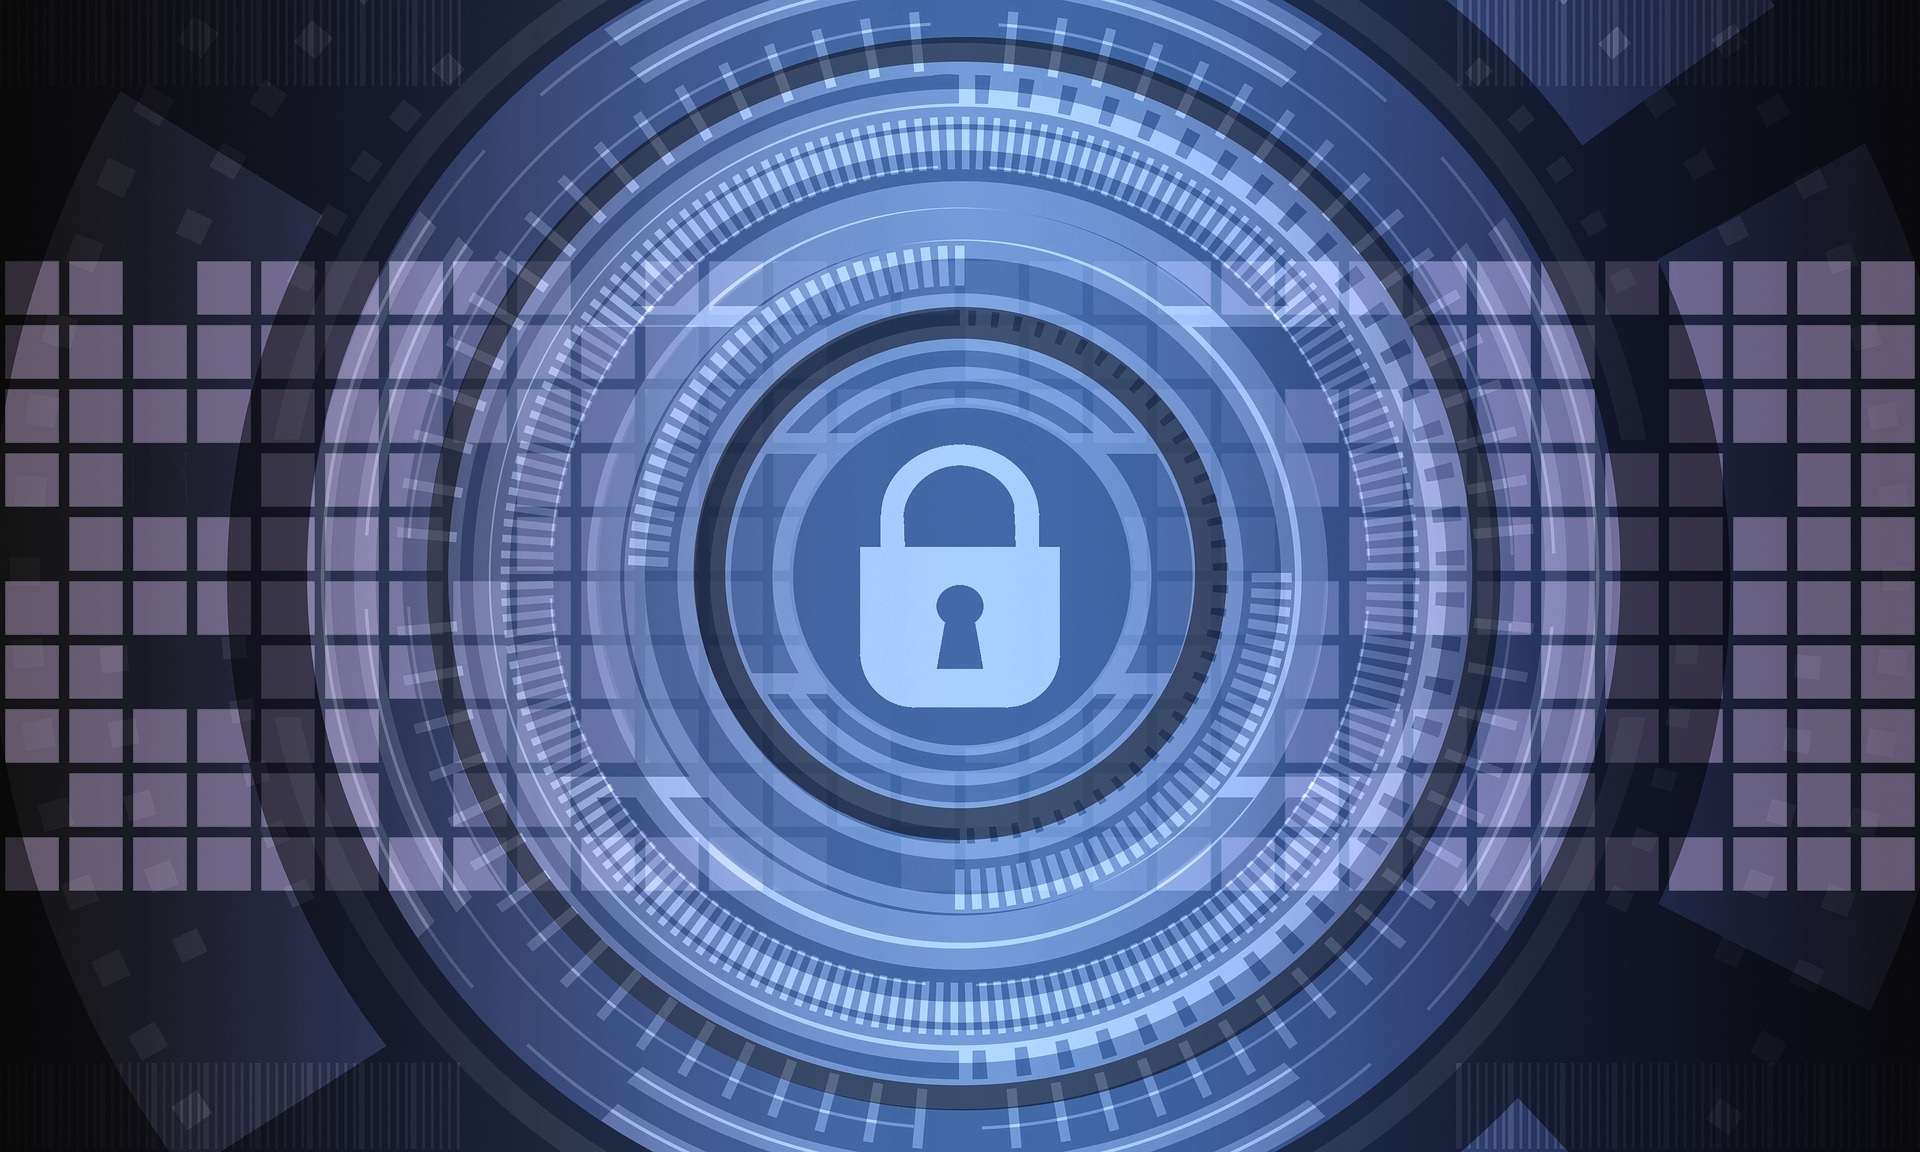 An image of a lock in a digital environment